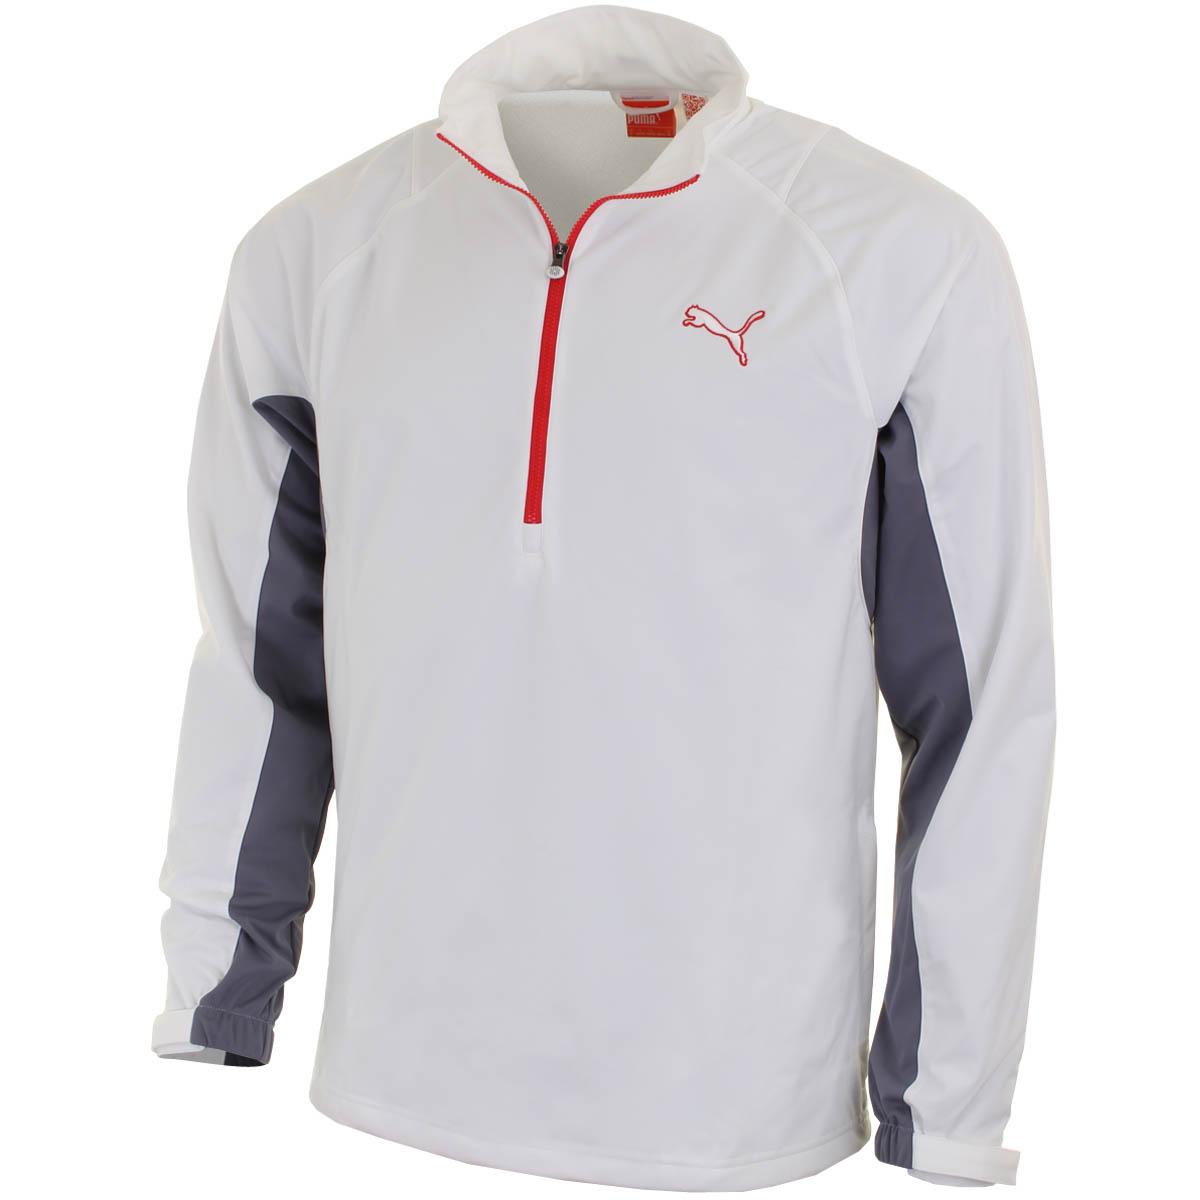 Image result for puma golf storm jacket